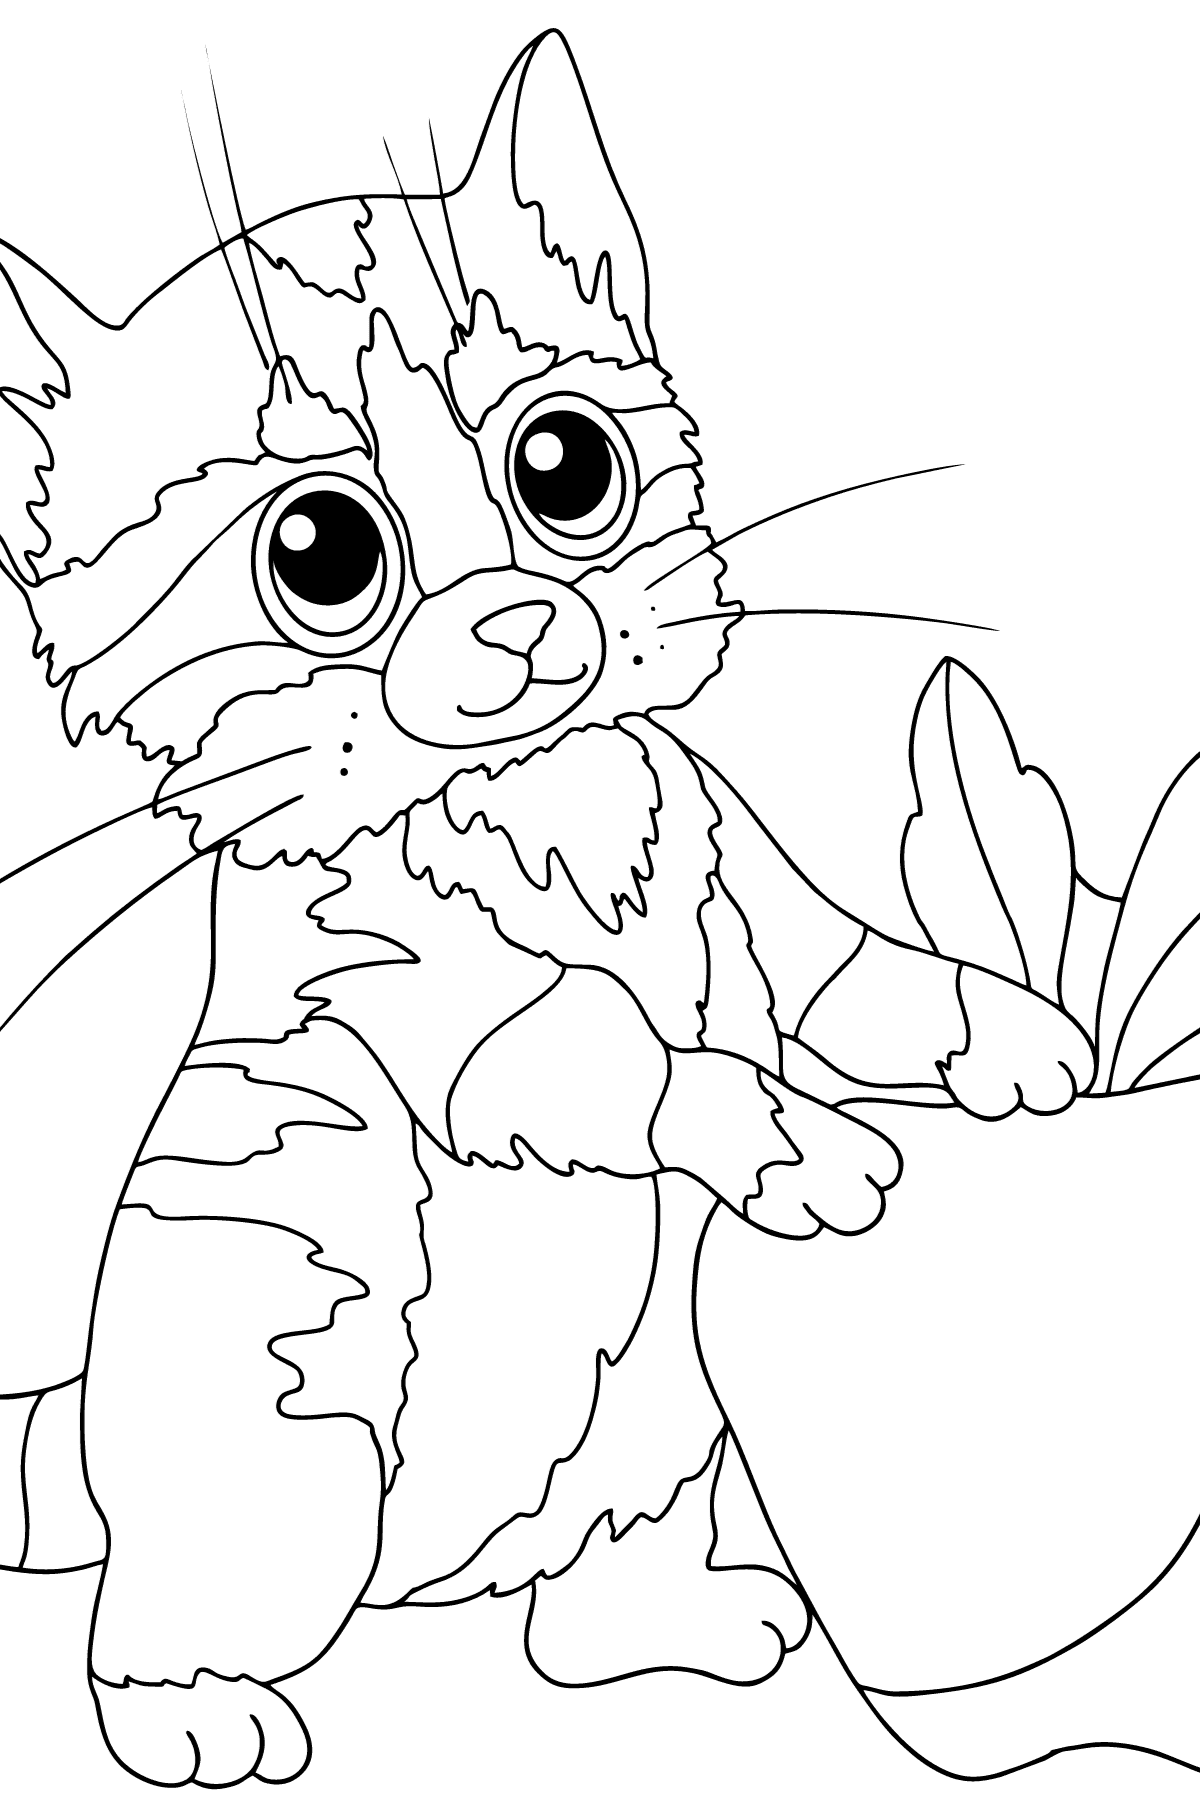 Coloring Page - A Cat and a Ripe Apple - Coloring Pages for Kids